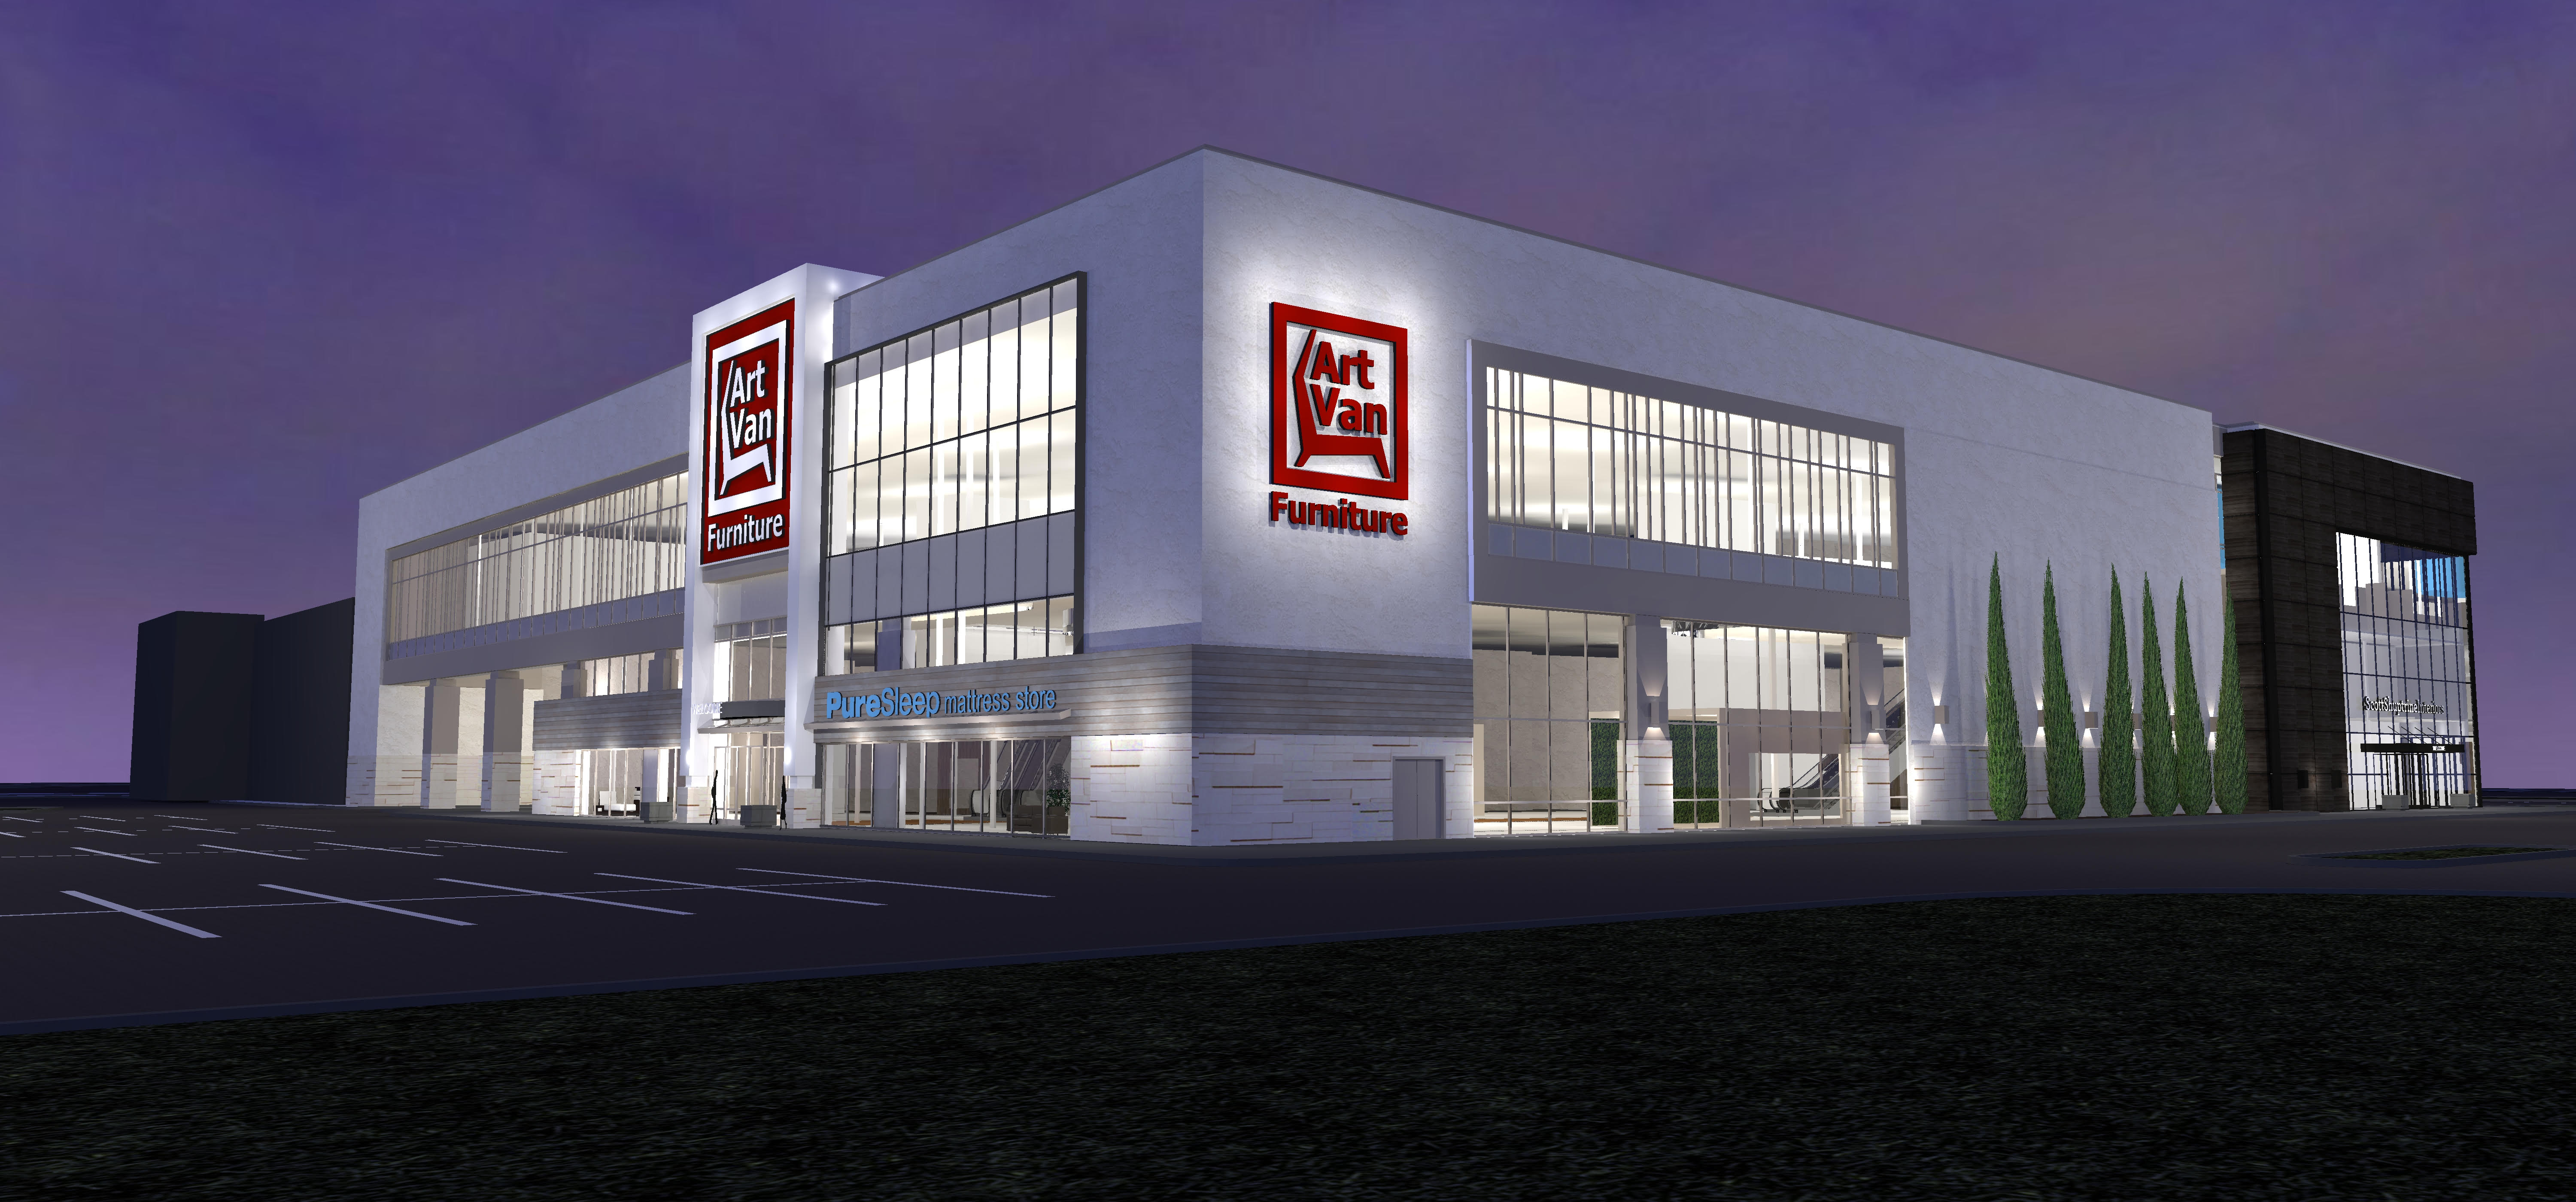 furniture store building. Art Van Furniture Largest Of New Stores Coming To Downers Grove Store Building O